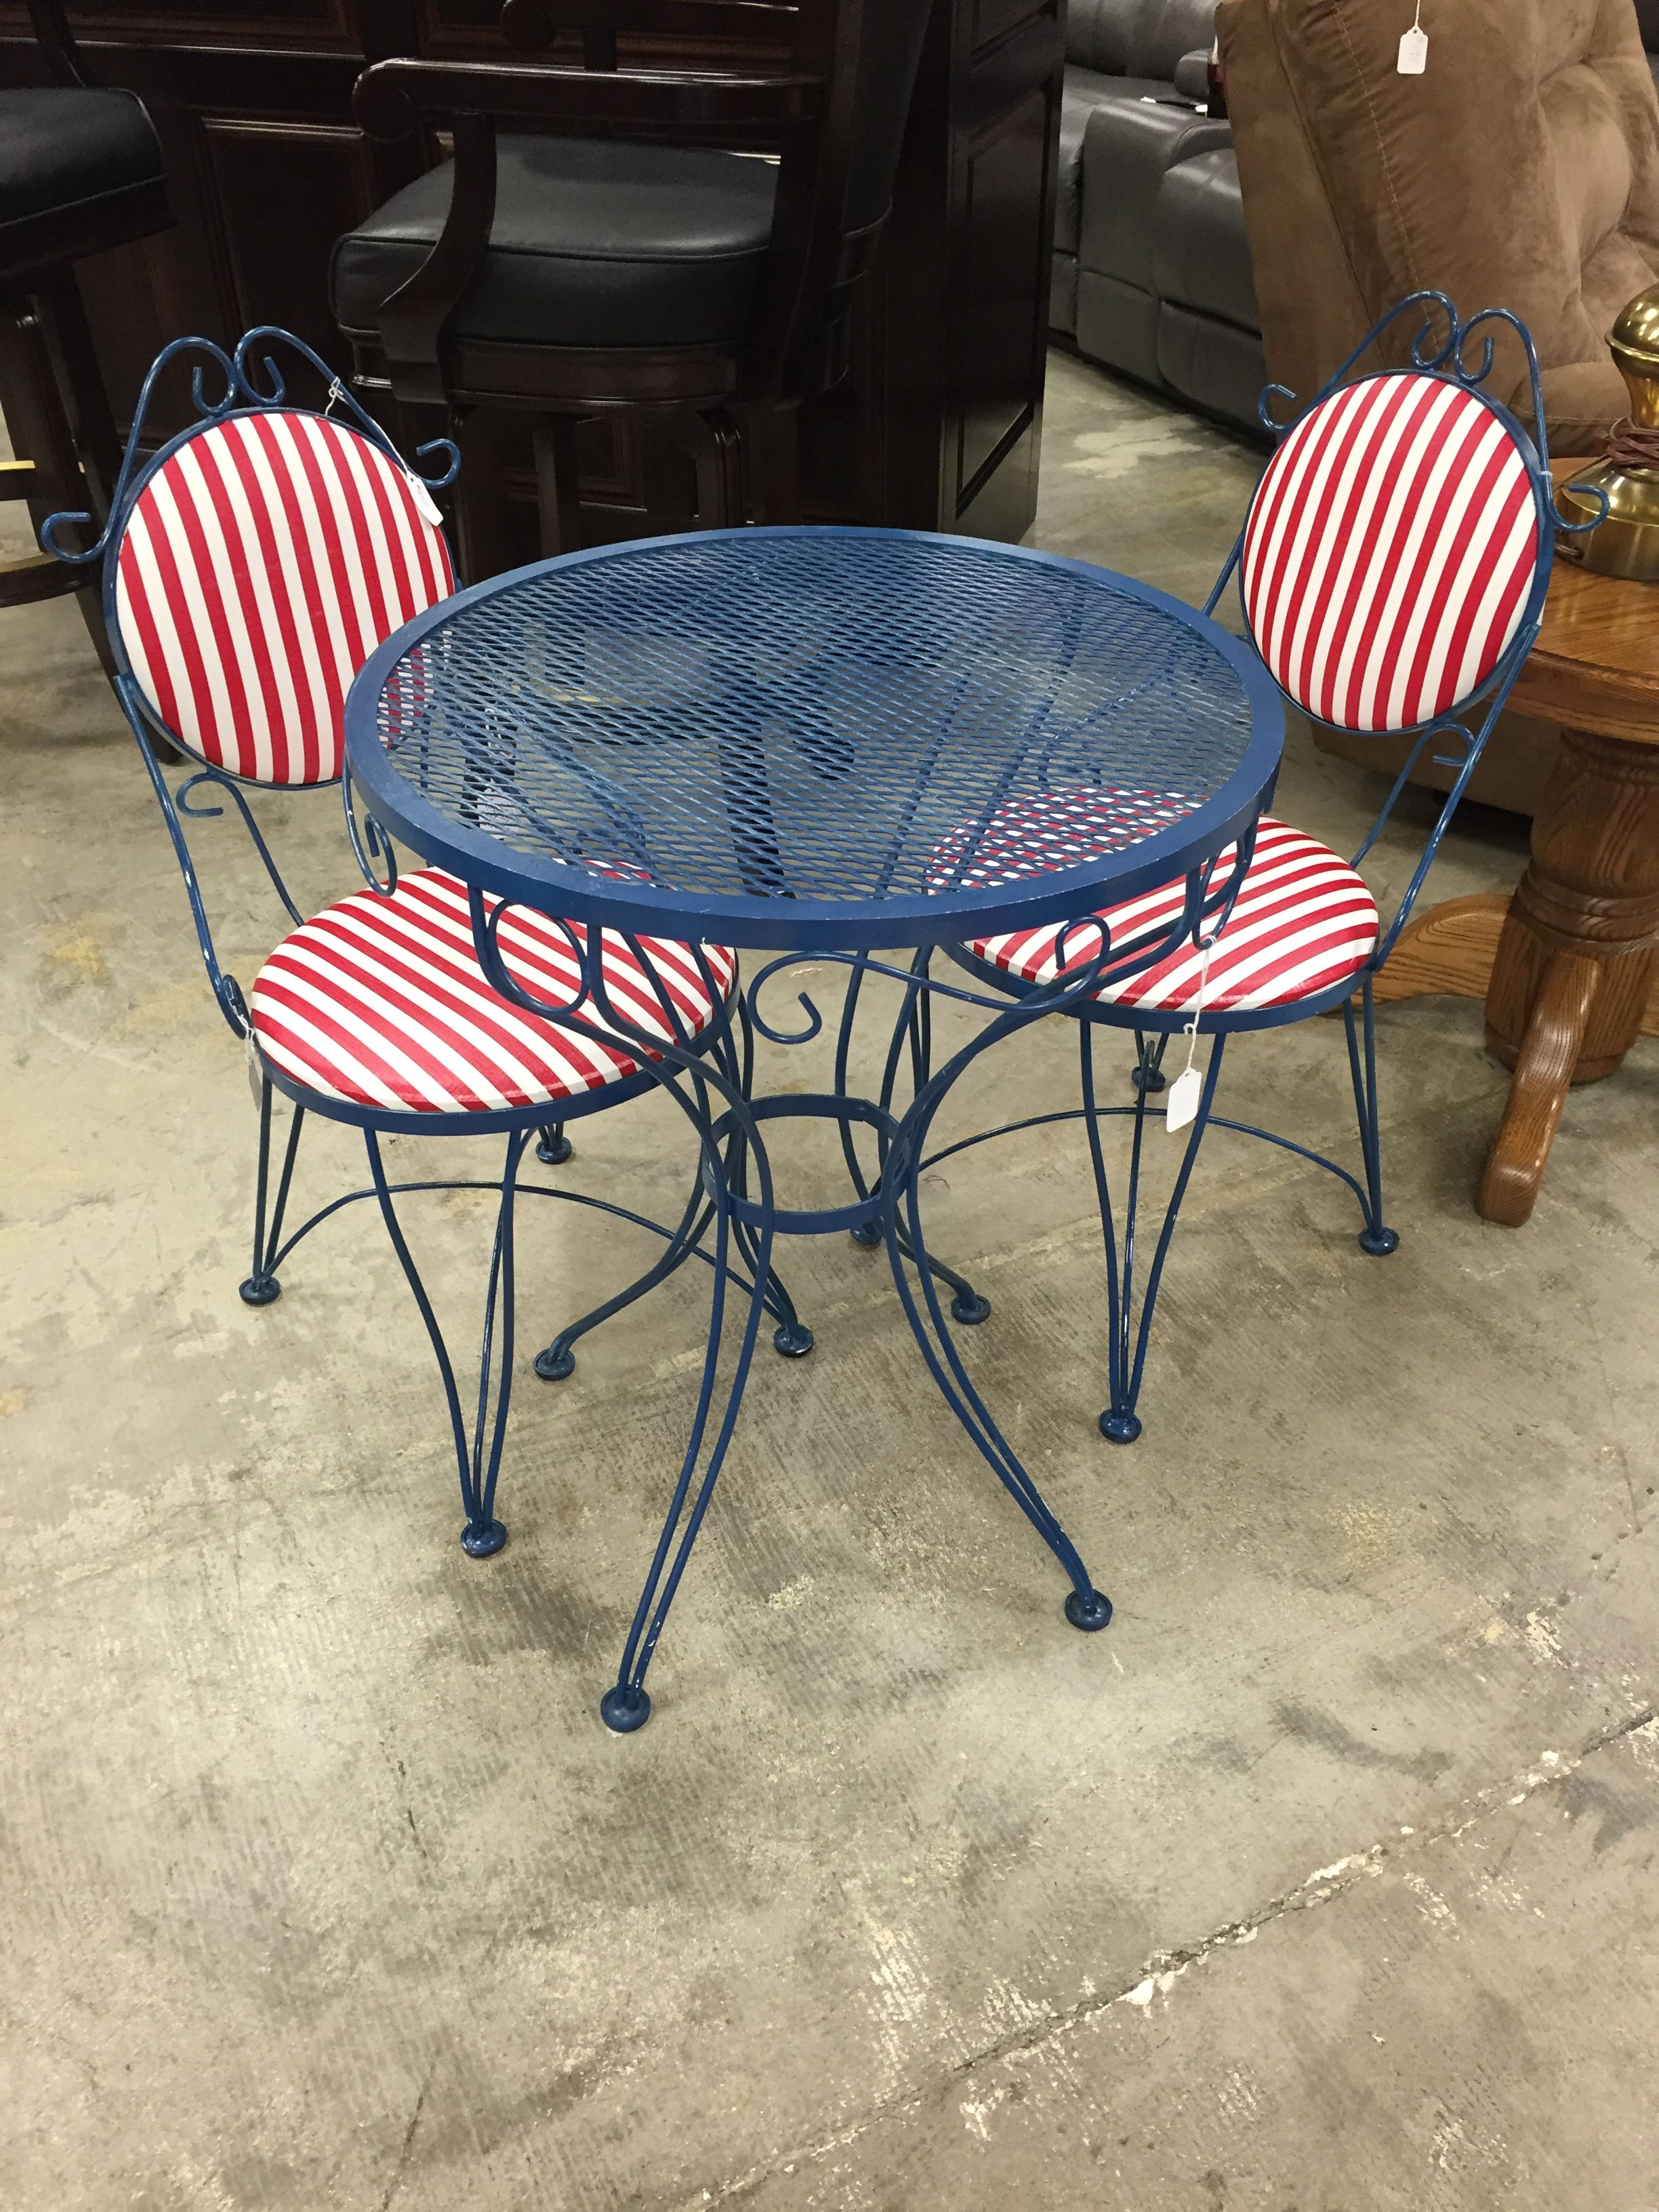 Fun and colorful patio set. Come by today before its gone